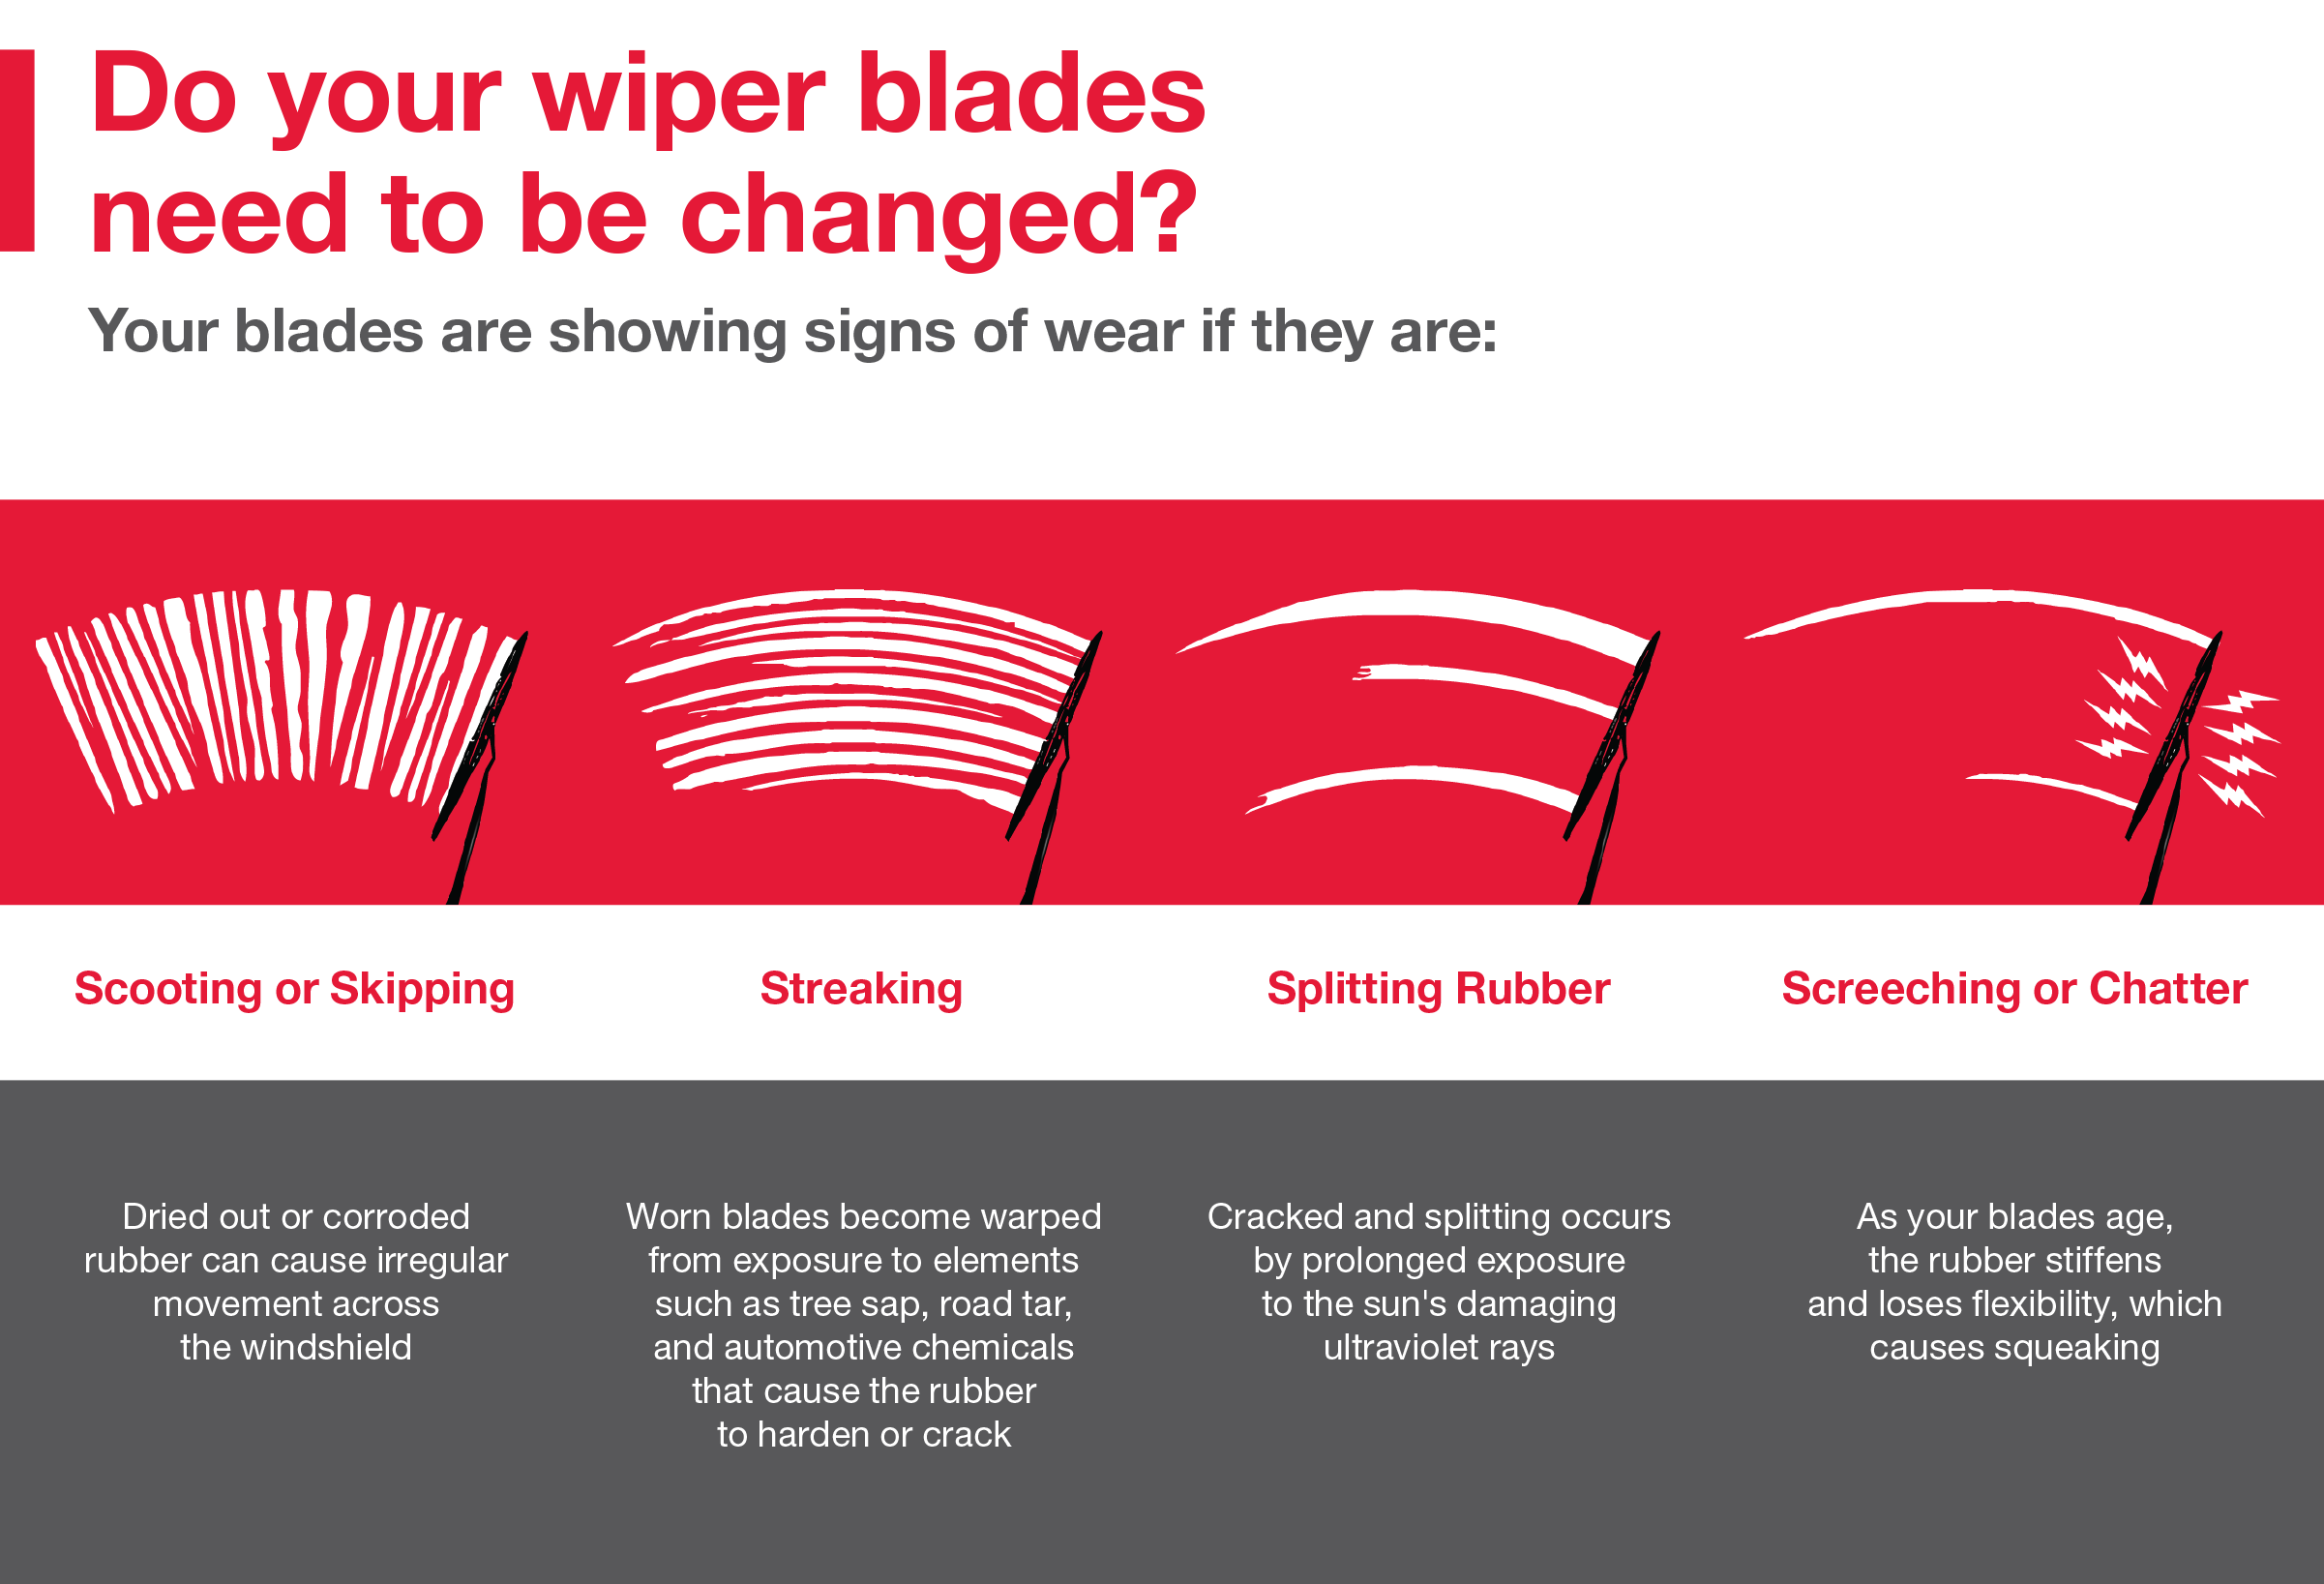 Do your wiper blades need to be changed? Call your local dealer for more info: (505) 780-4767